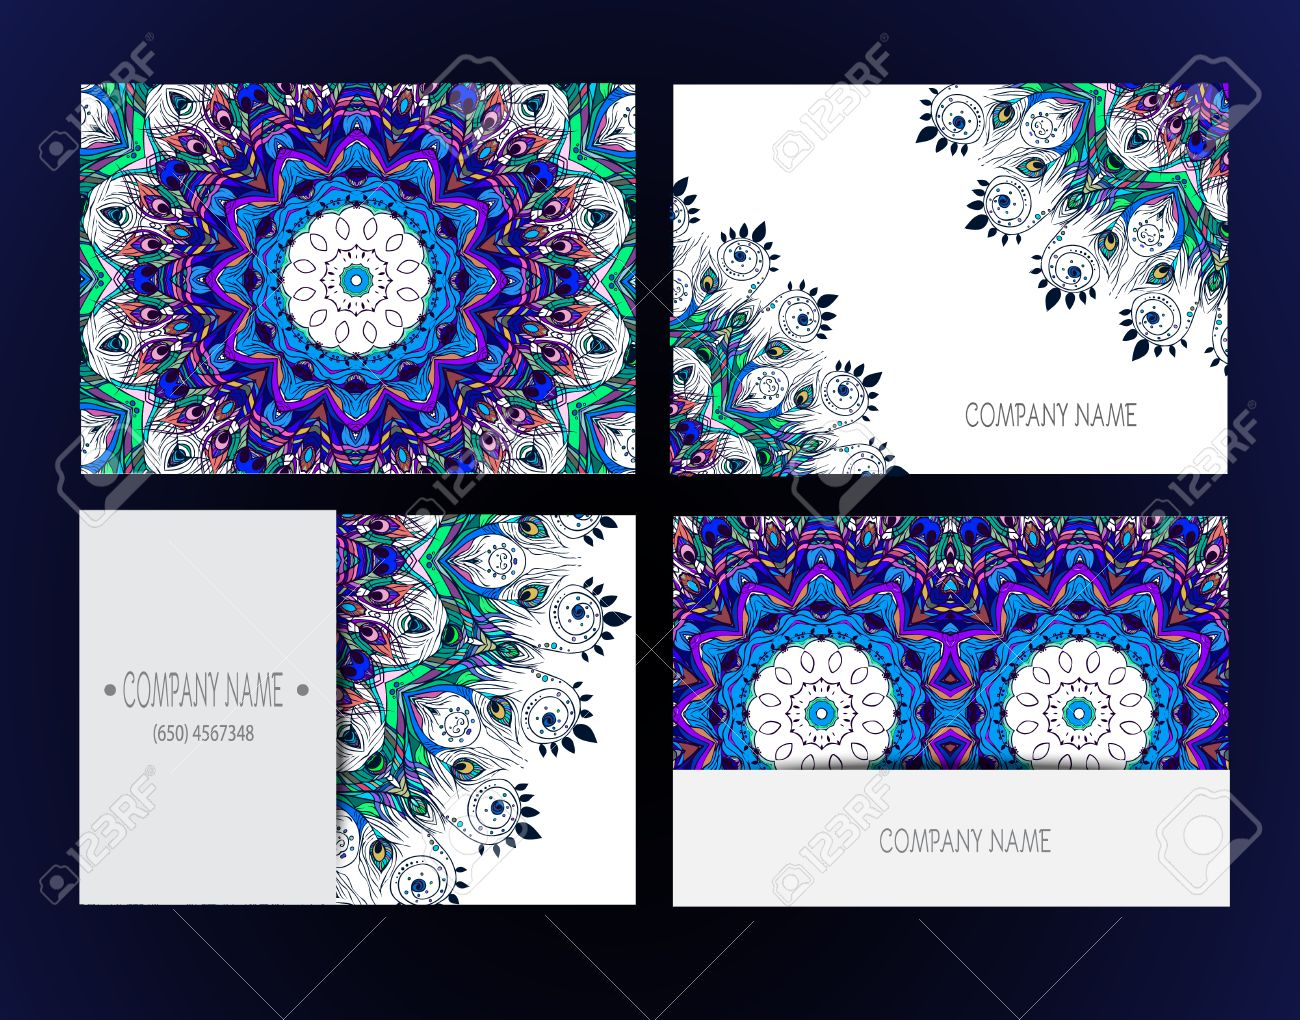 Awesome starting greeting card business gallery business card starting greeting card business image collections greeting card kristyandbryce Gallery